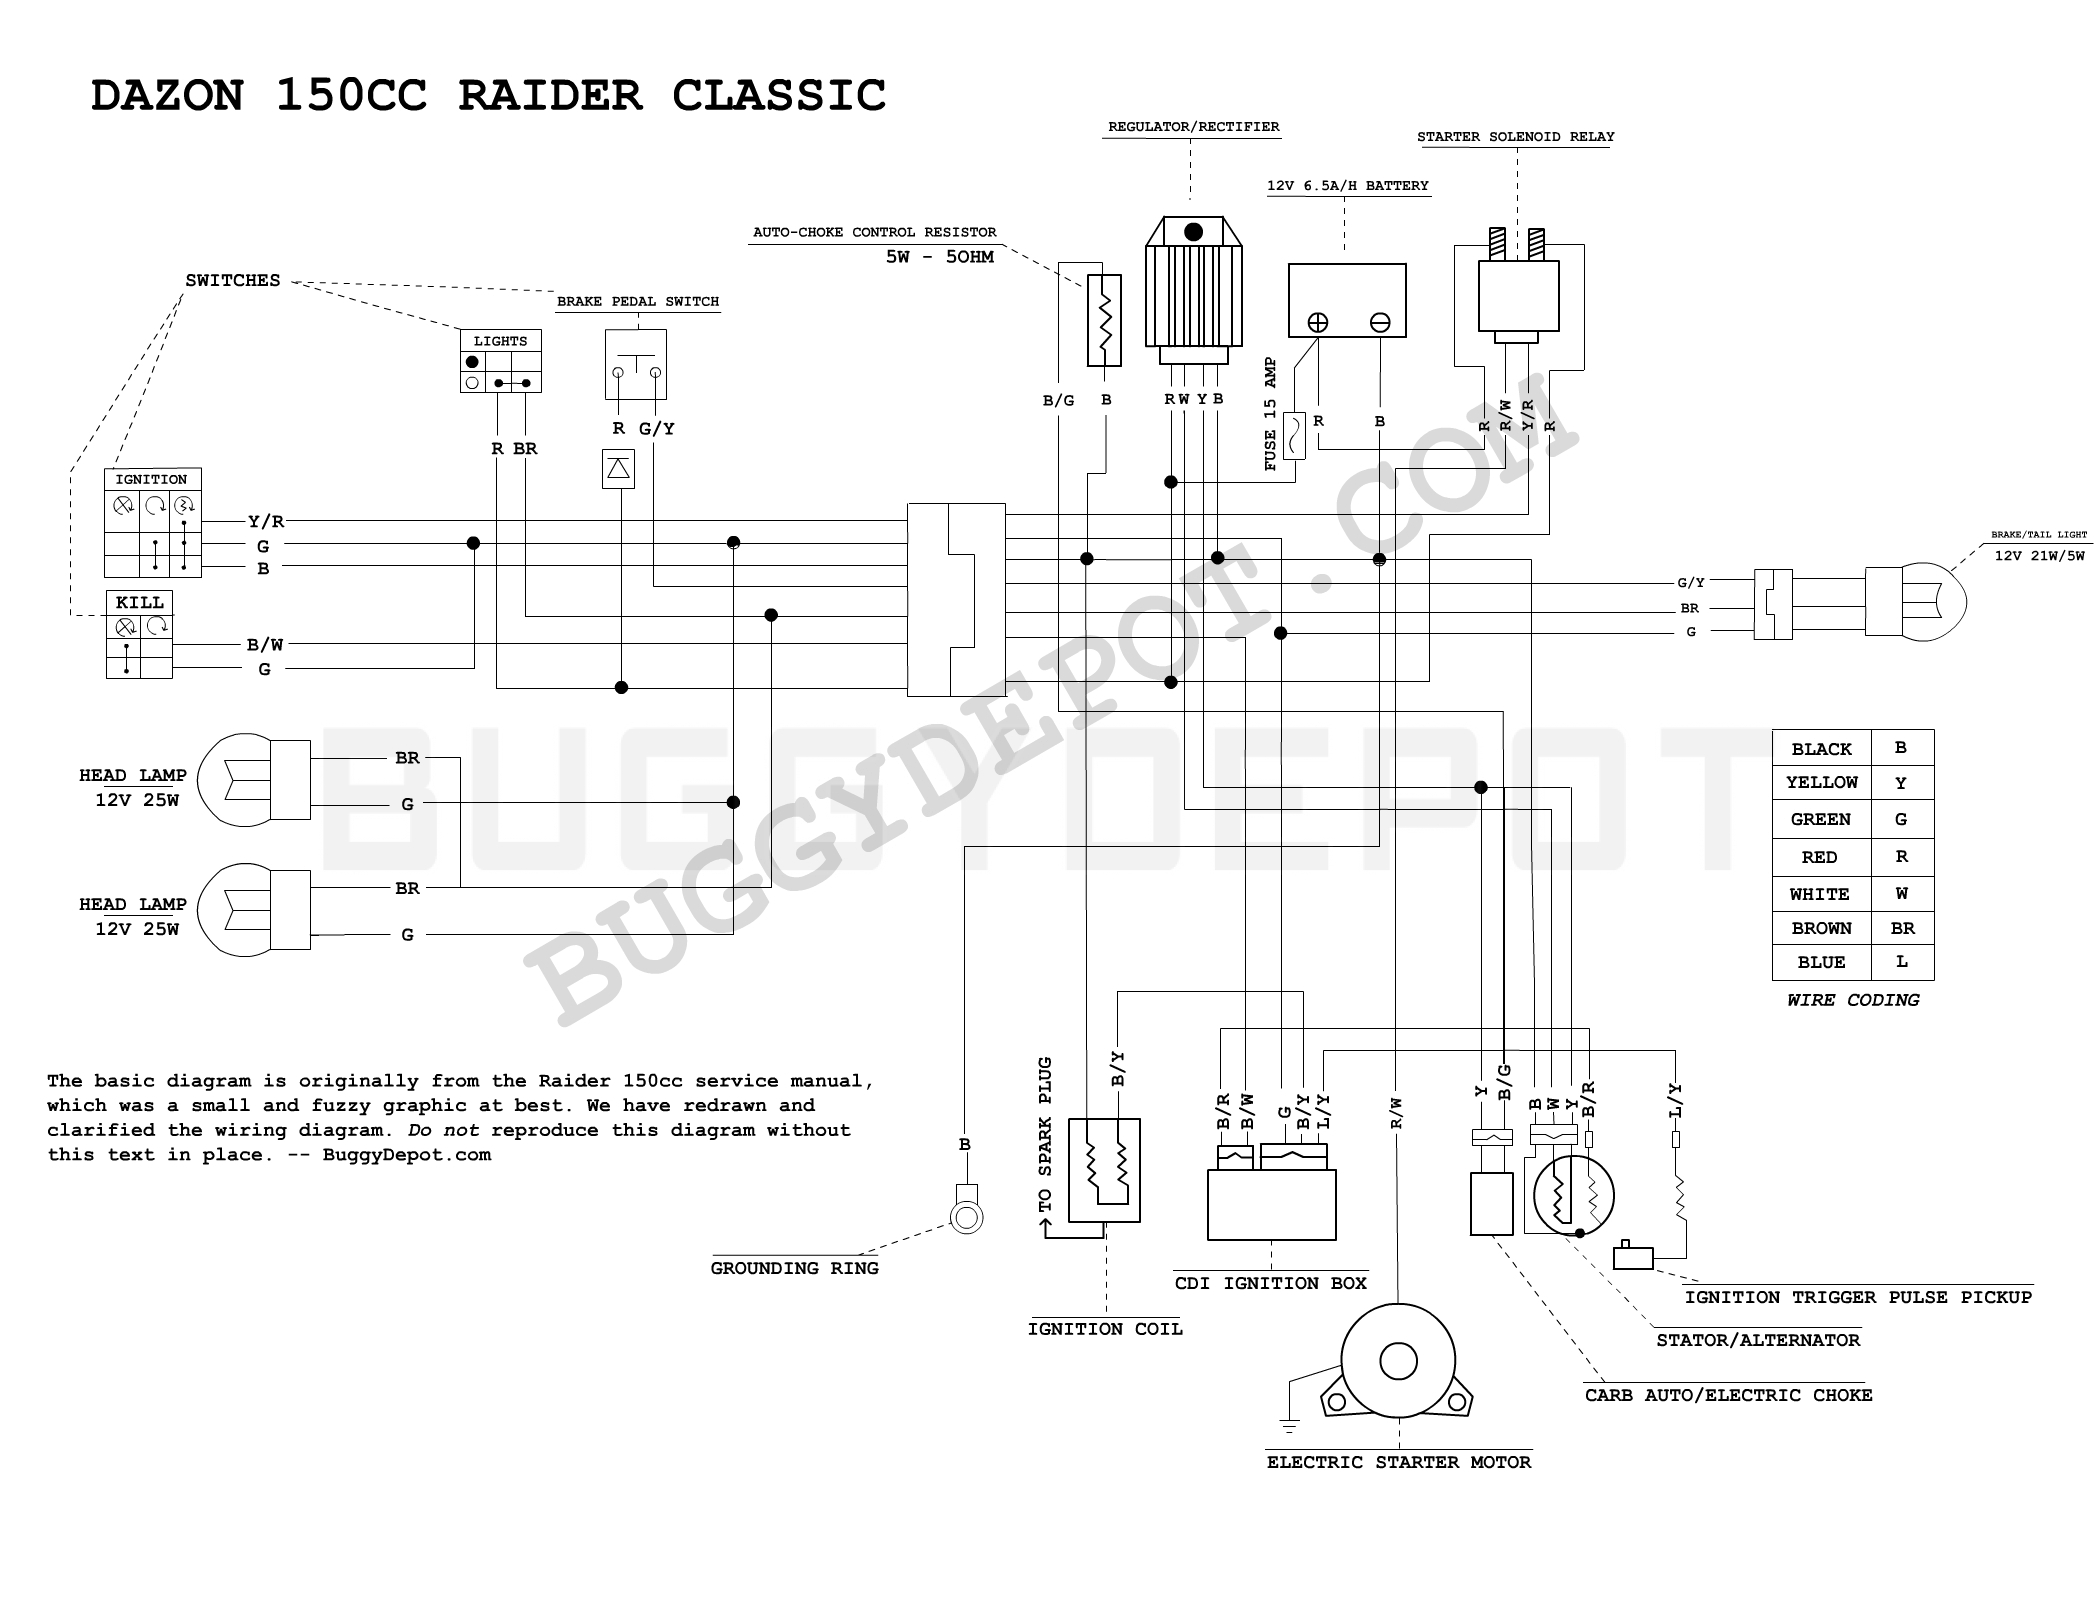 article_33_1278205207 gy6 150cc ignition troubleshooting guide no spark? buggy depot gy6 ignition wiring diagram at money-cpm.com